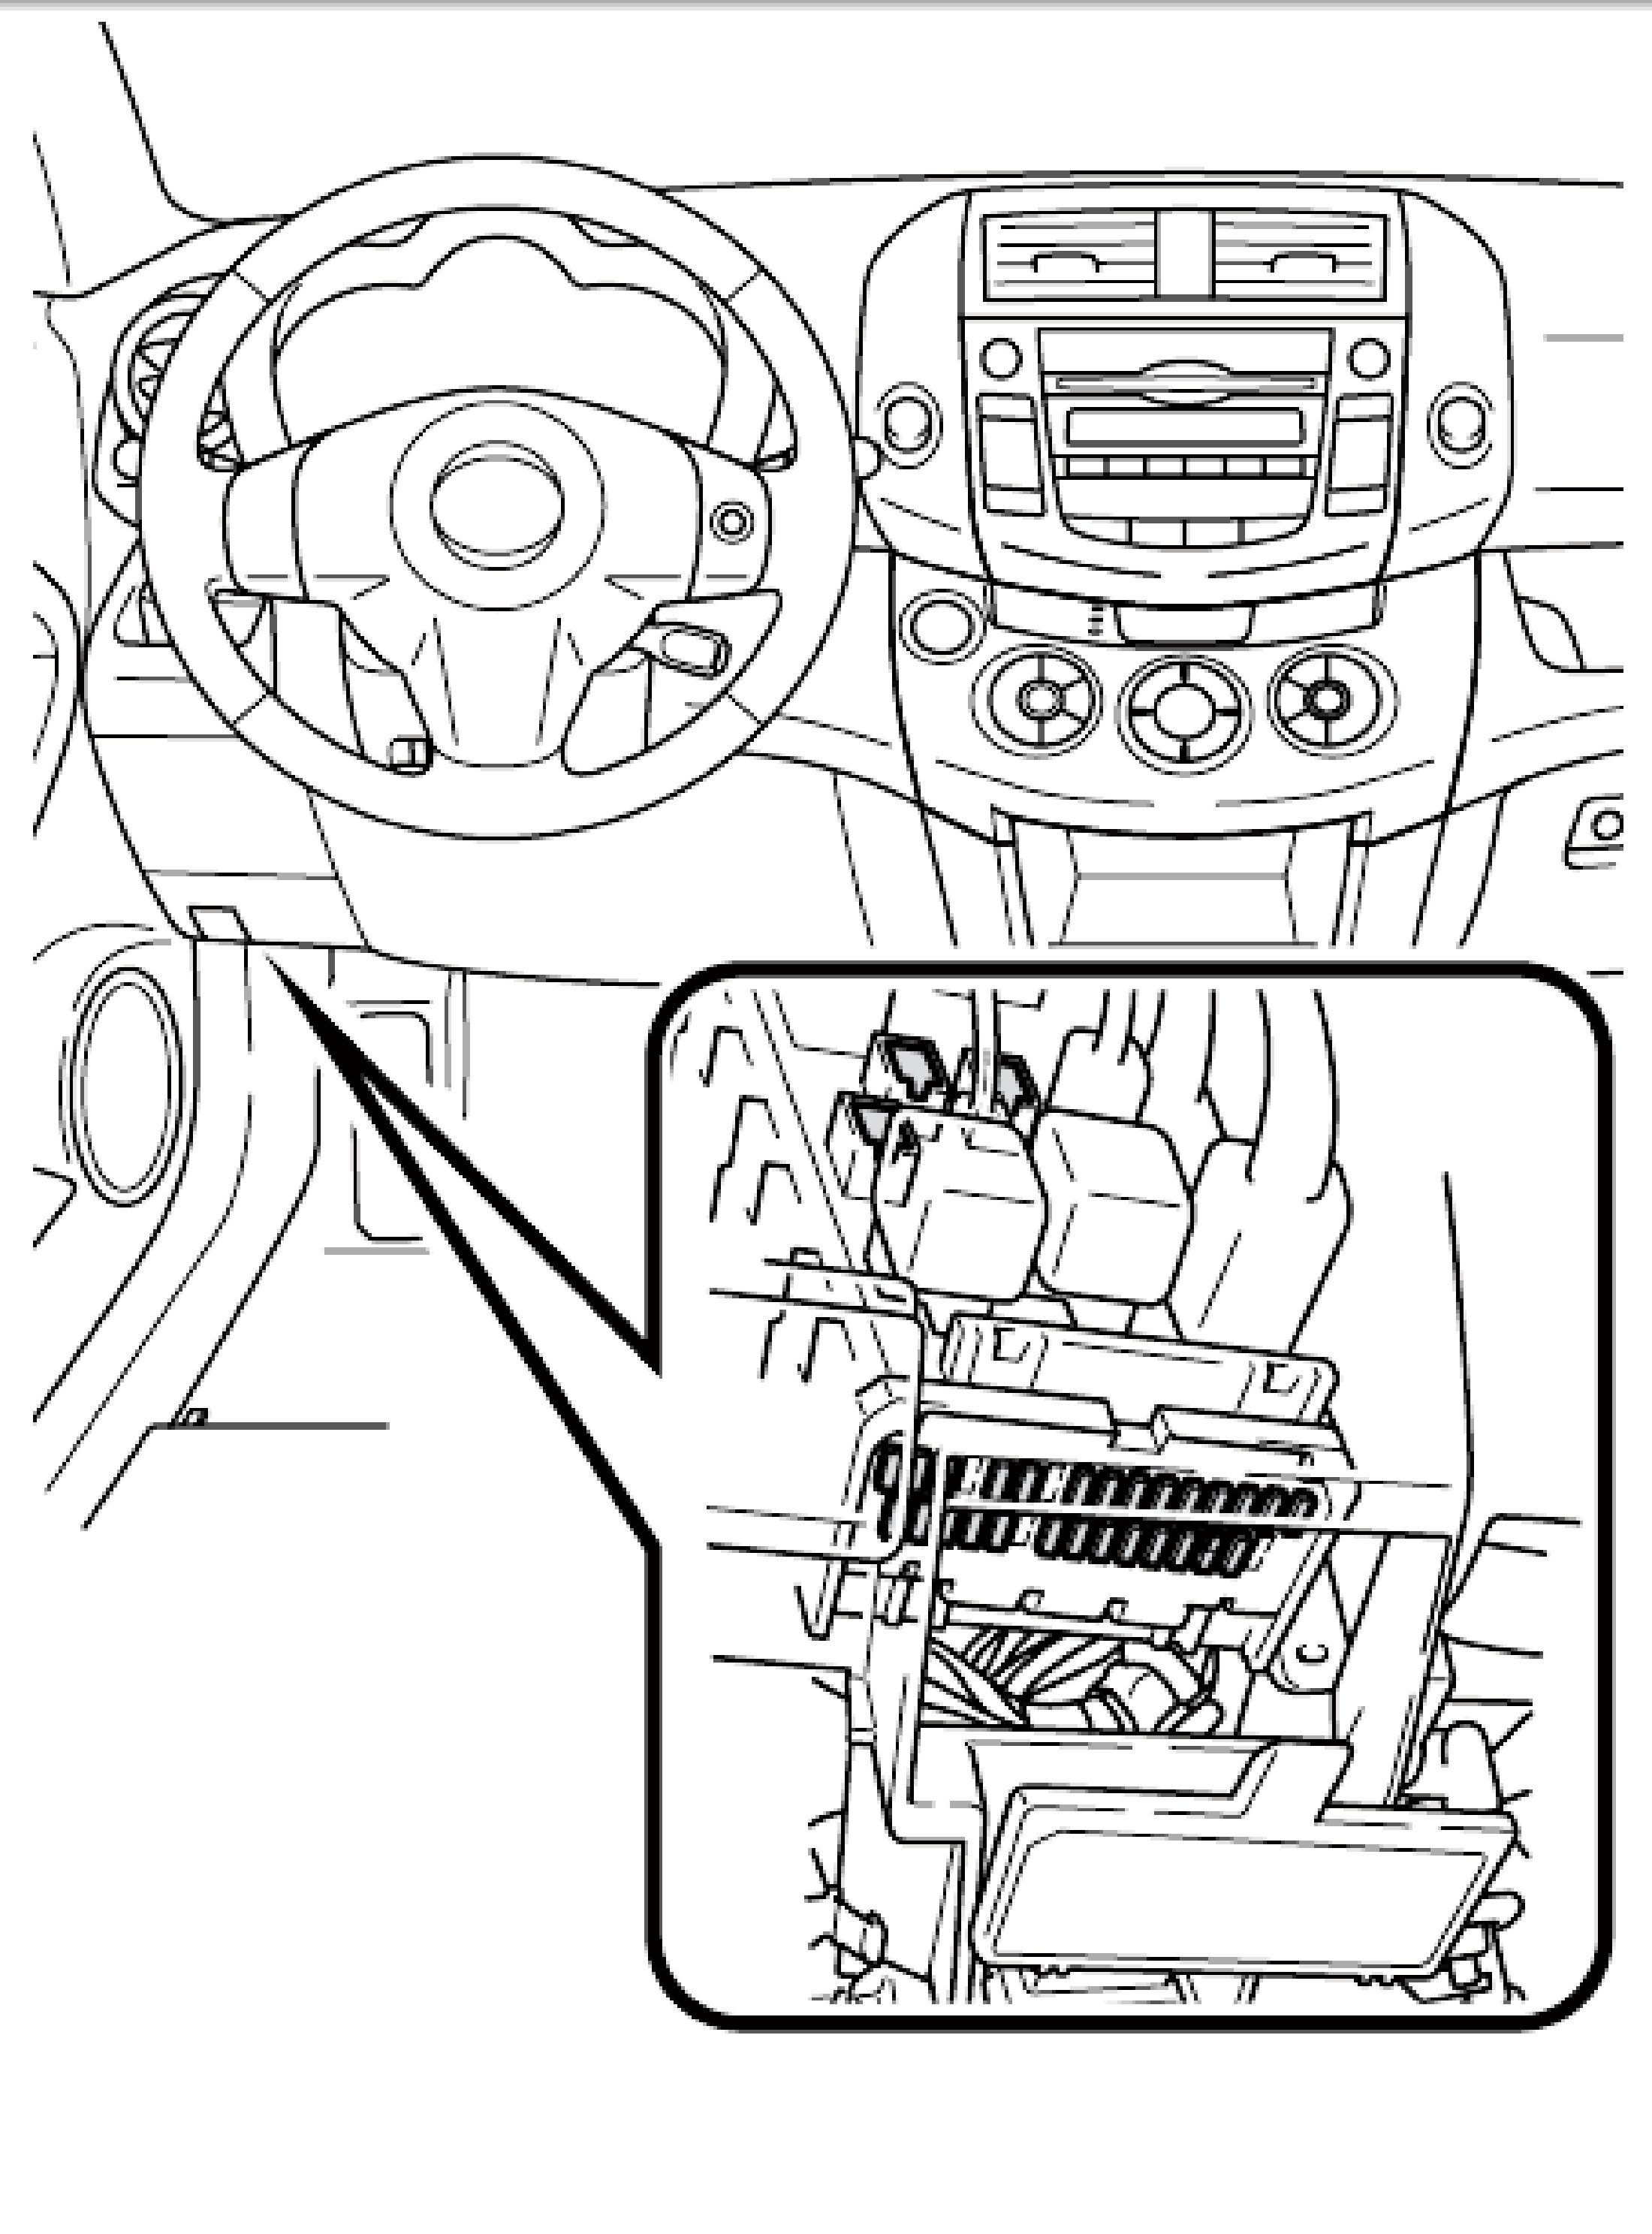 2009 tacoma fuse diagram